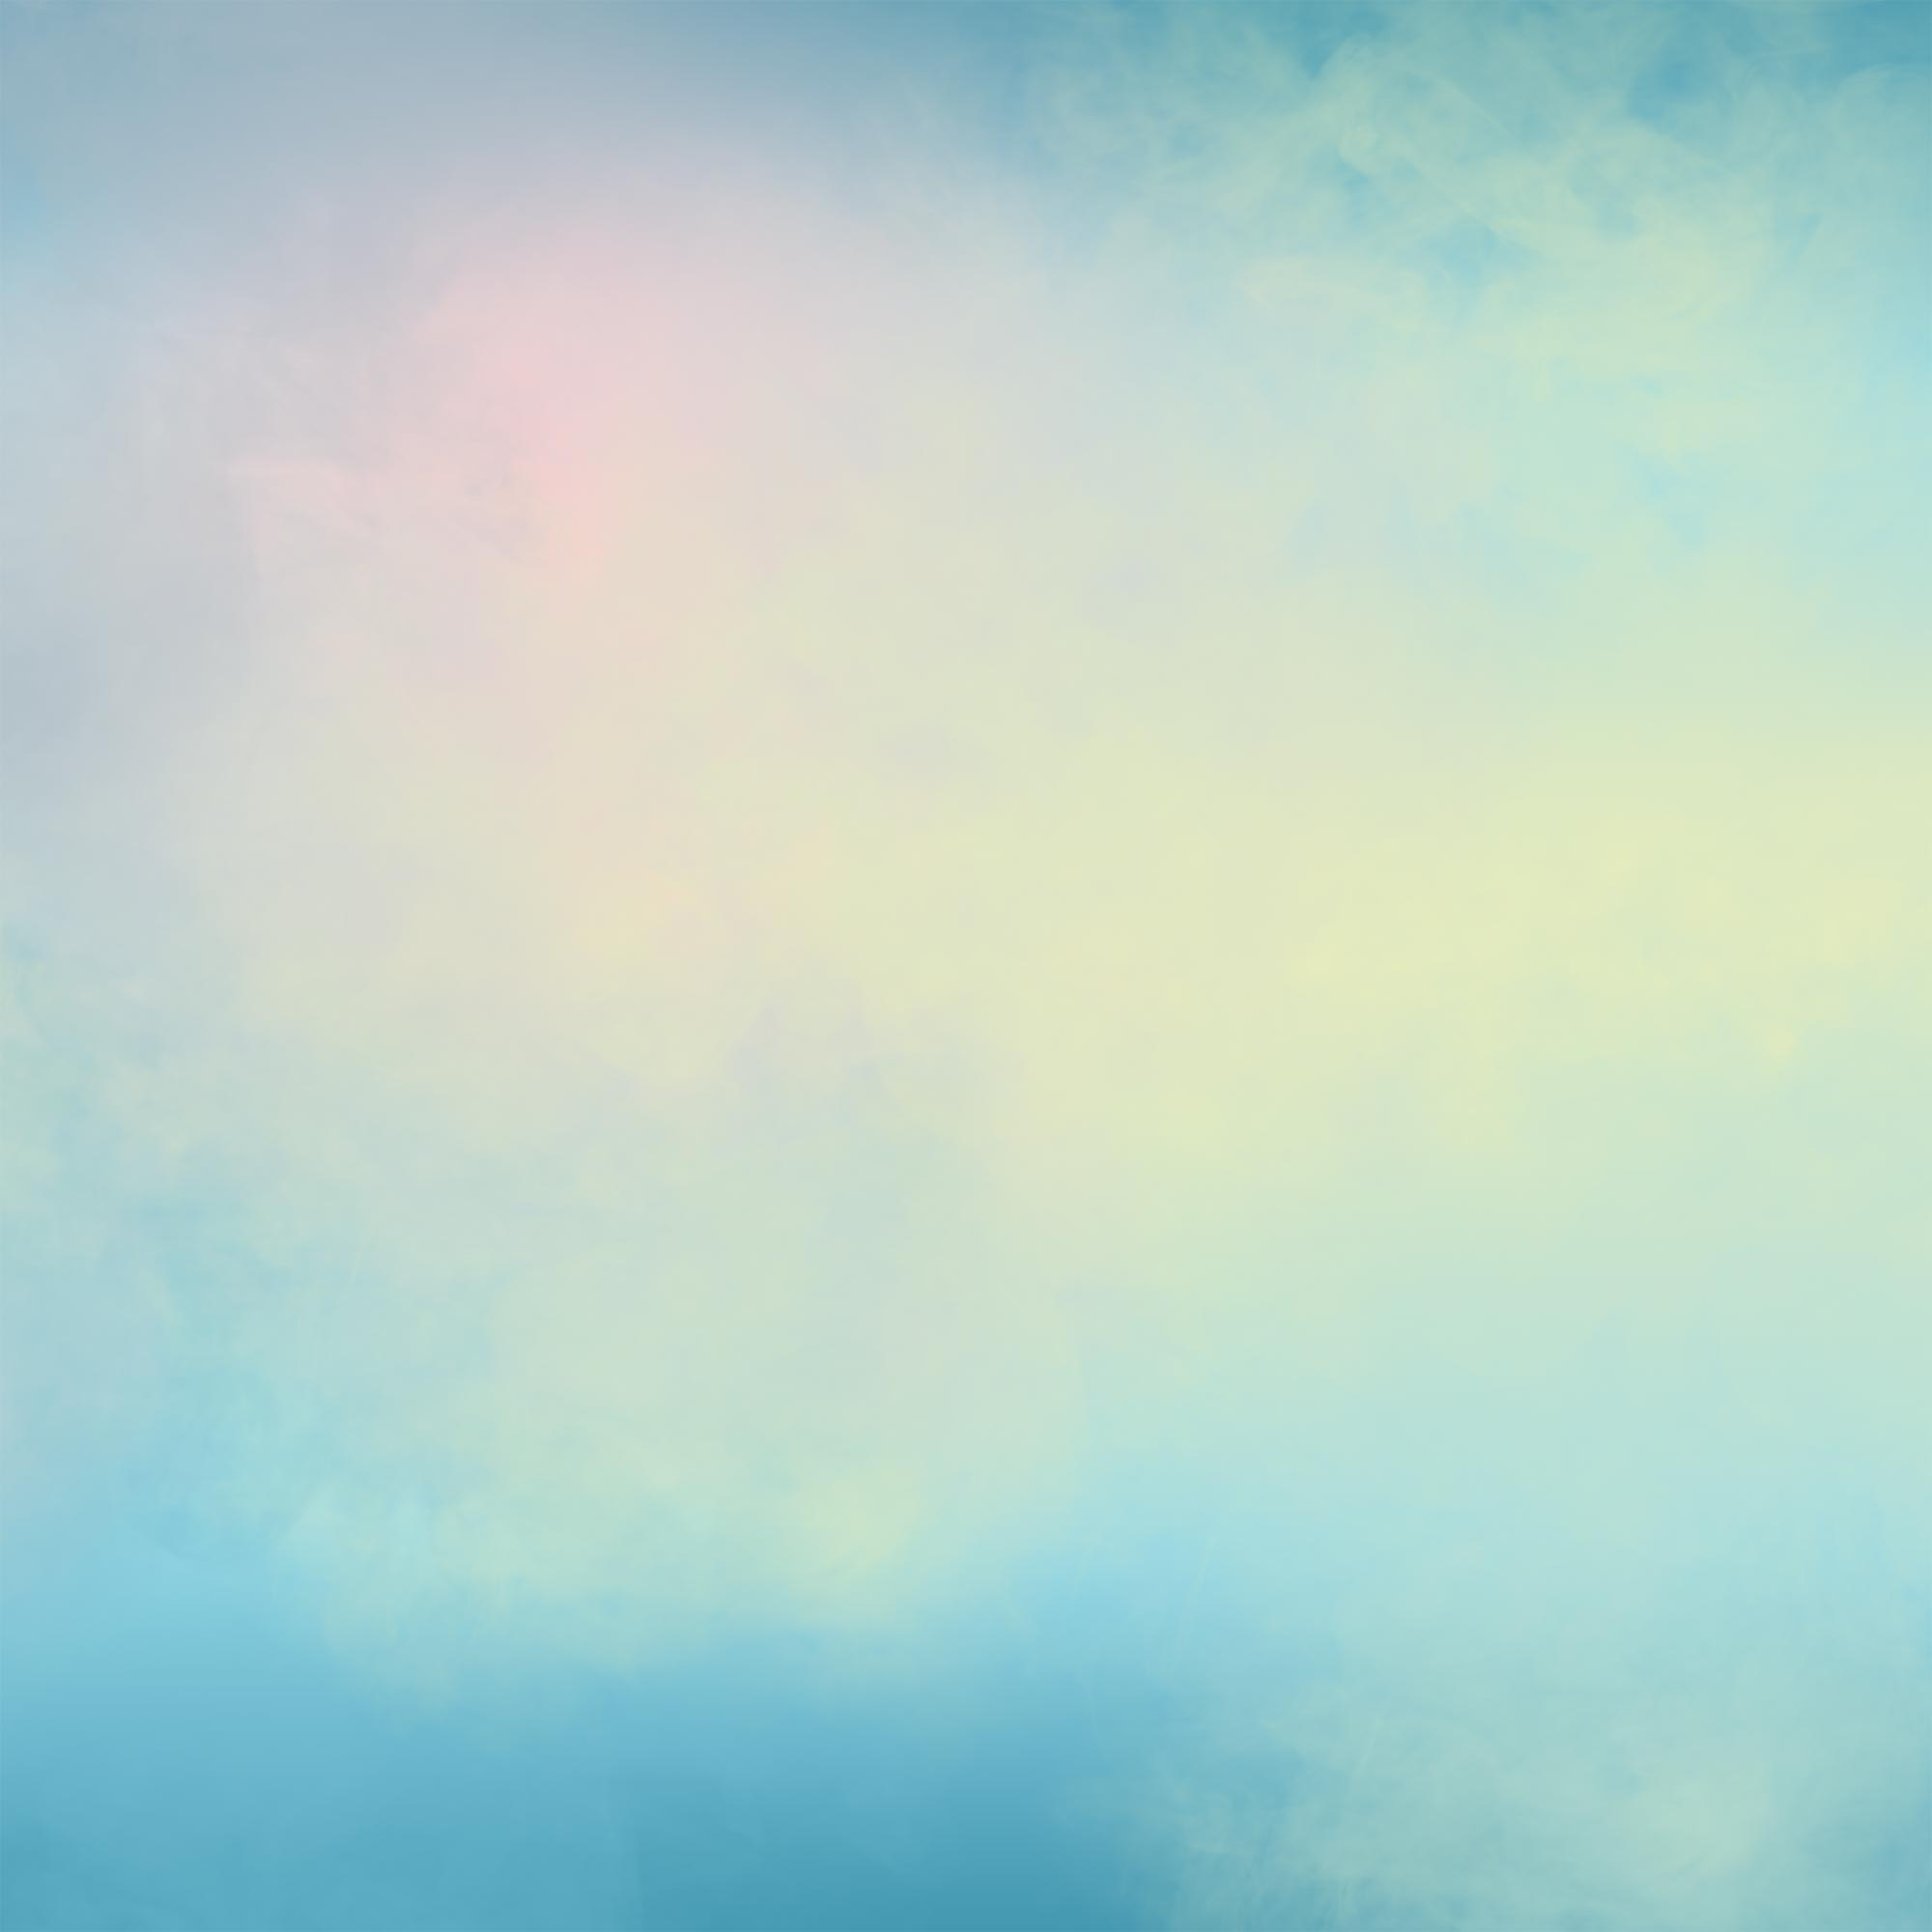 Relaxing Colours Pastel Backgrounds Image Wallpaper Cave